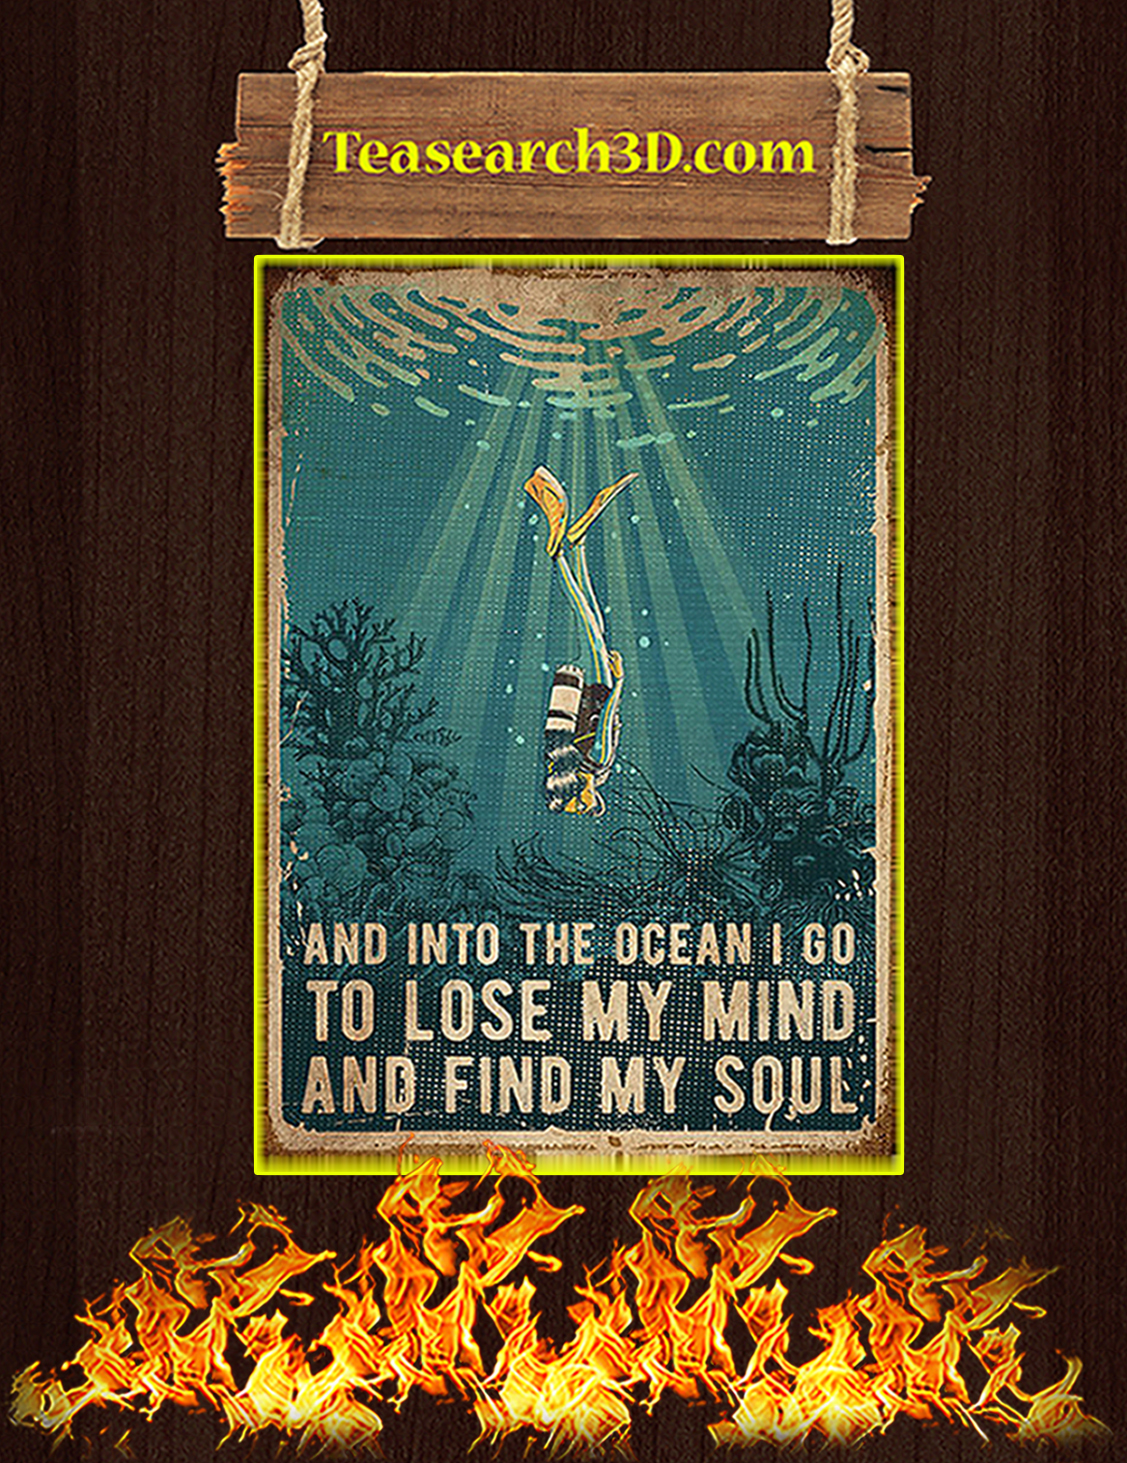 Scuba And into the ocean I go to lose my mind and find my soul poster A3